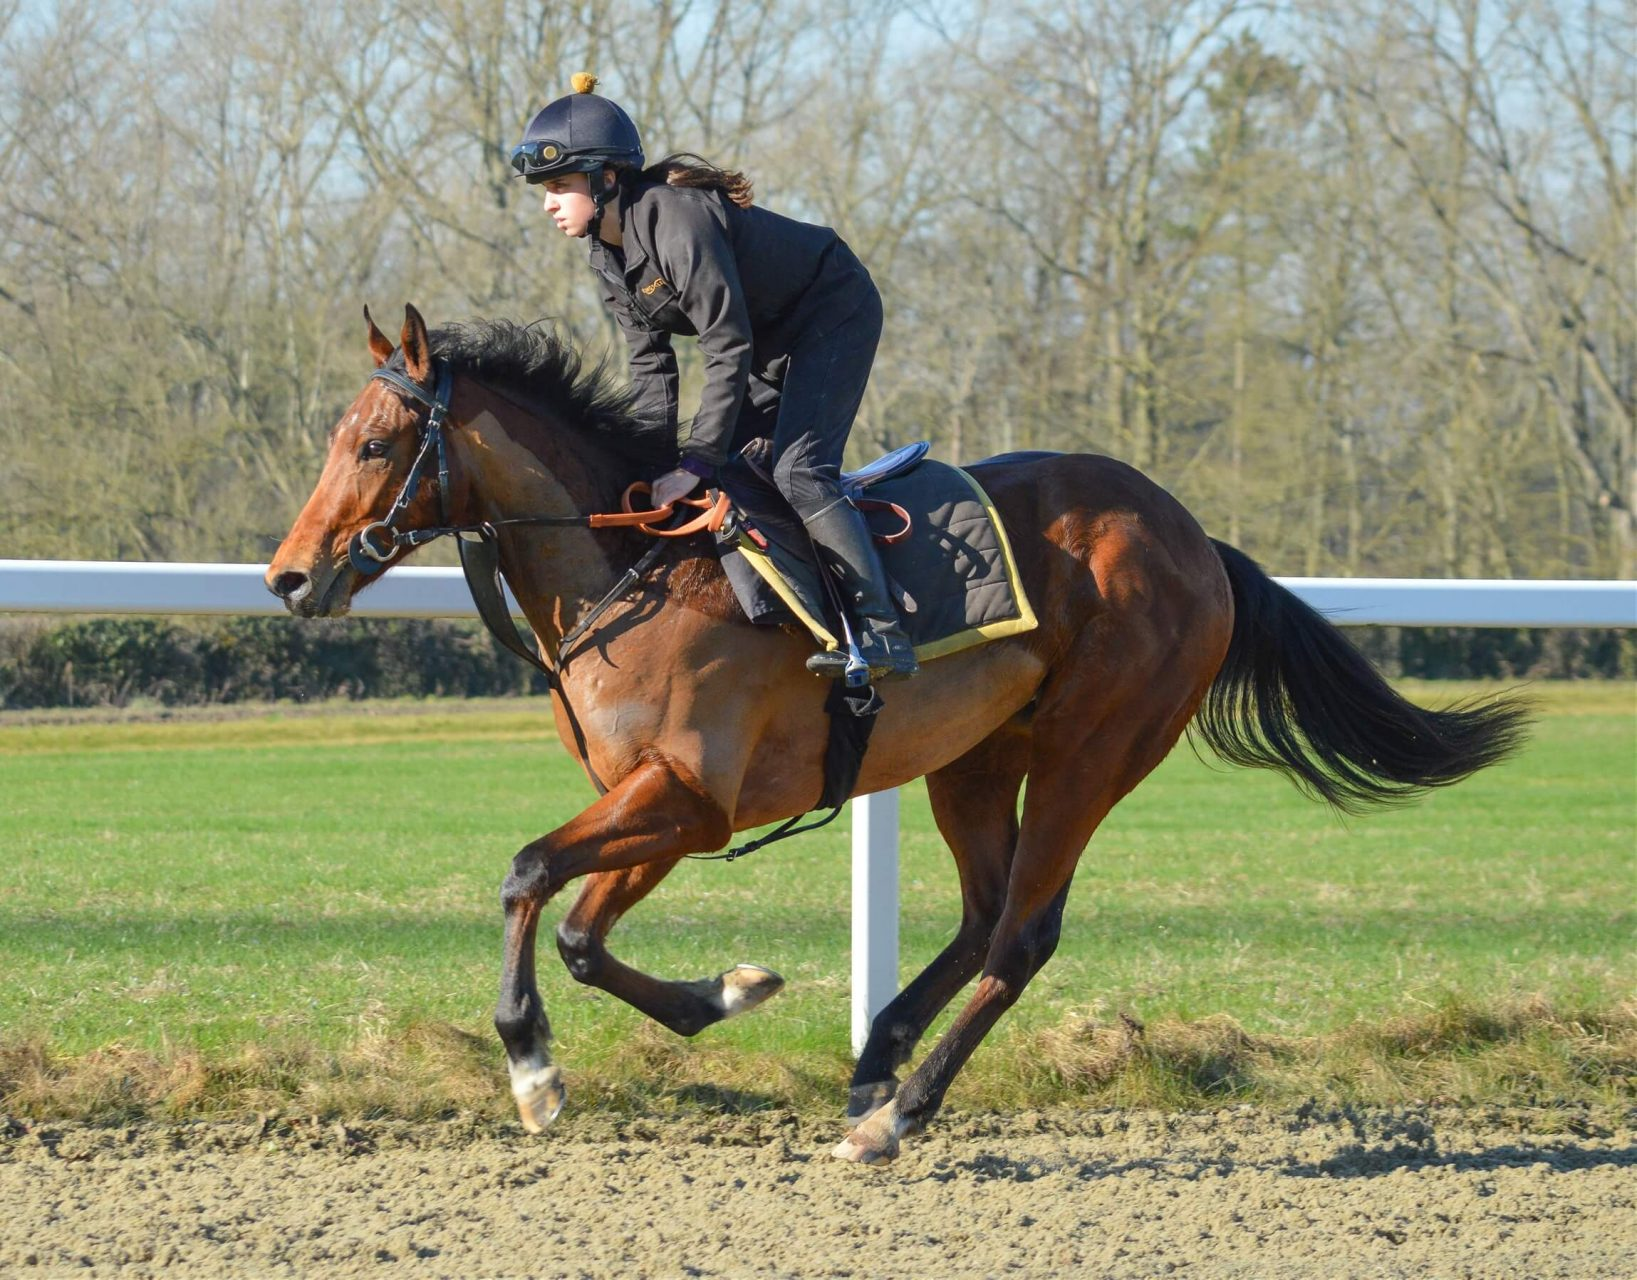 Acclamation 2yo colt racehorse syndicate trained by Andrew Balding on gallop 19 February 2019